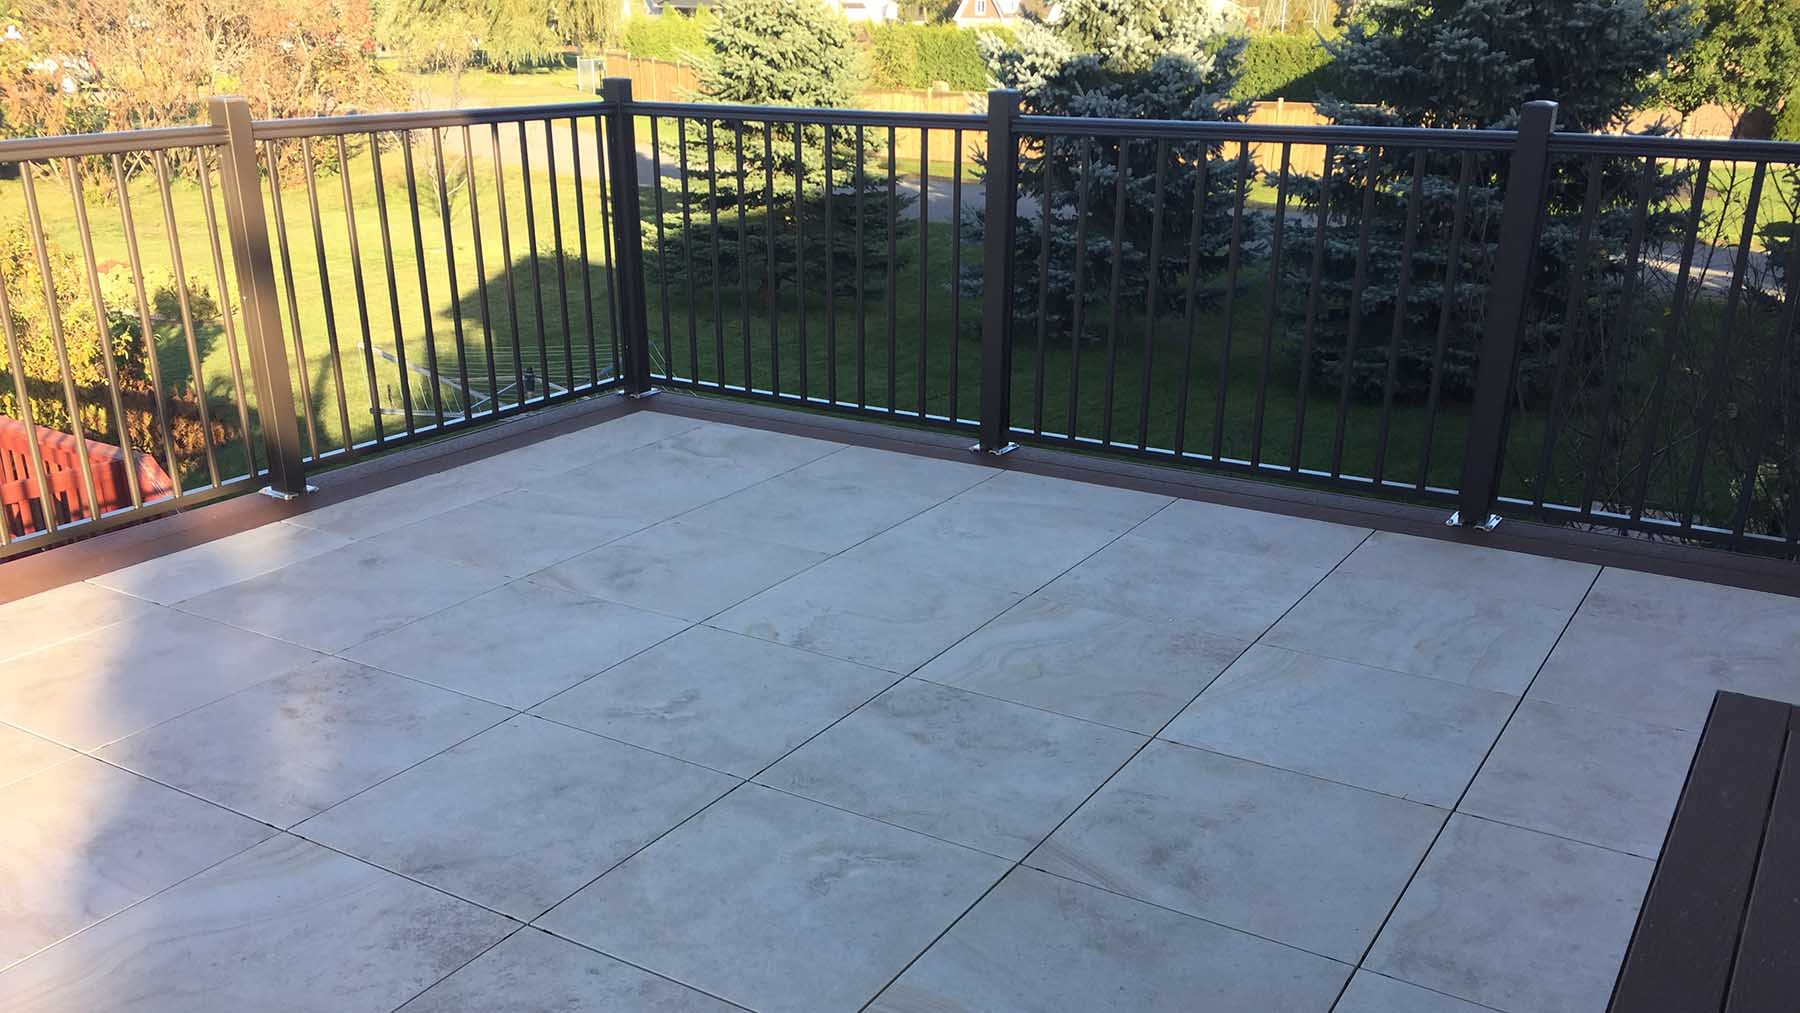 Silca grid below stone pavers and framed by composite decking.